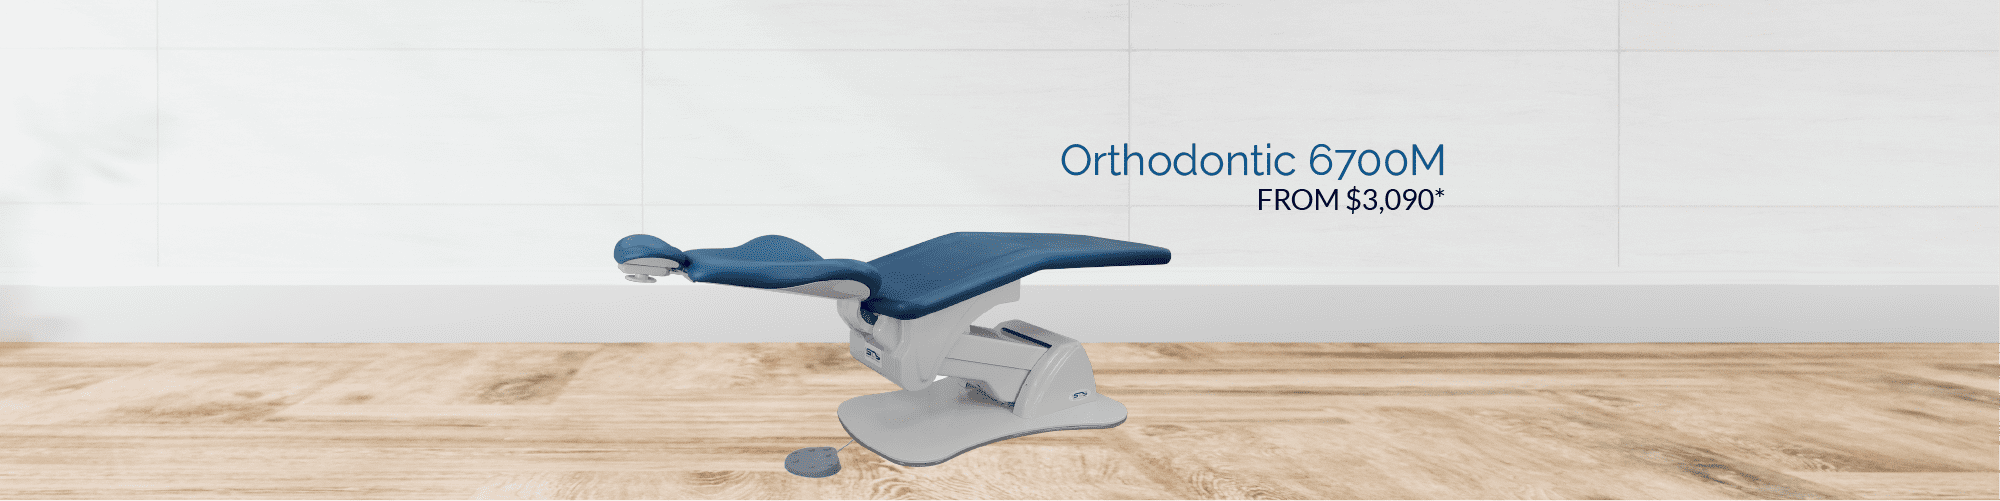 Orthodontic Dental Chair